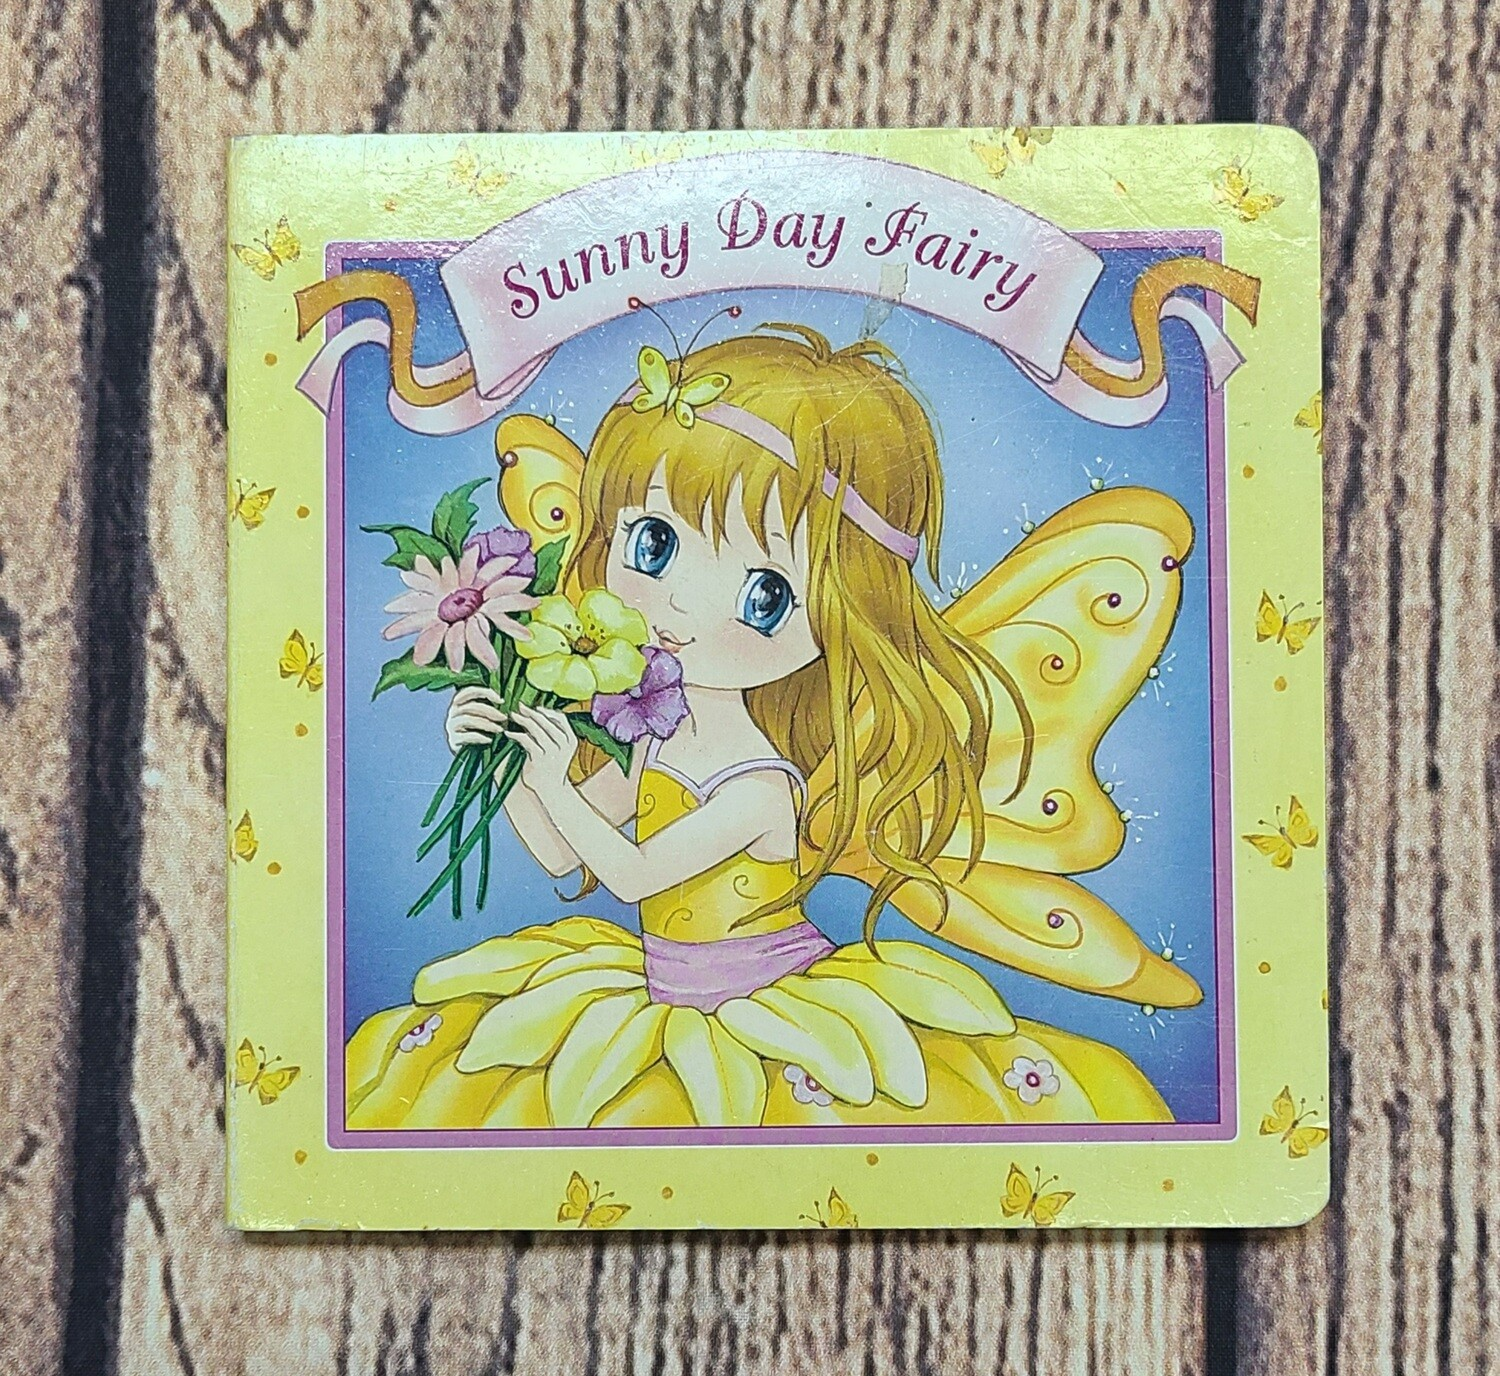 Sunny Day Fairy by Lee Krutop